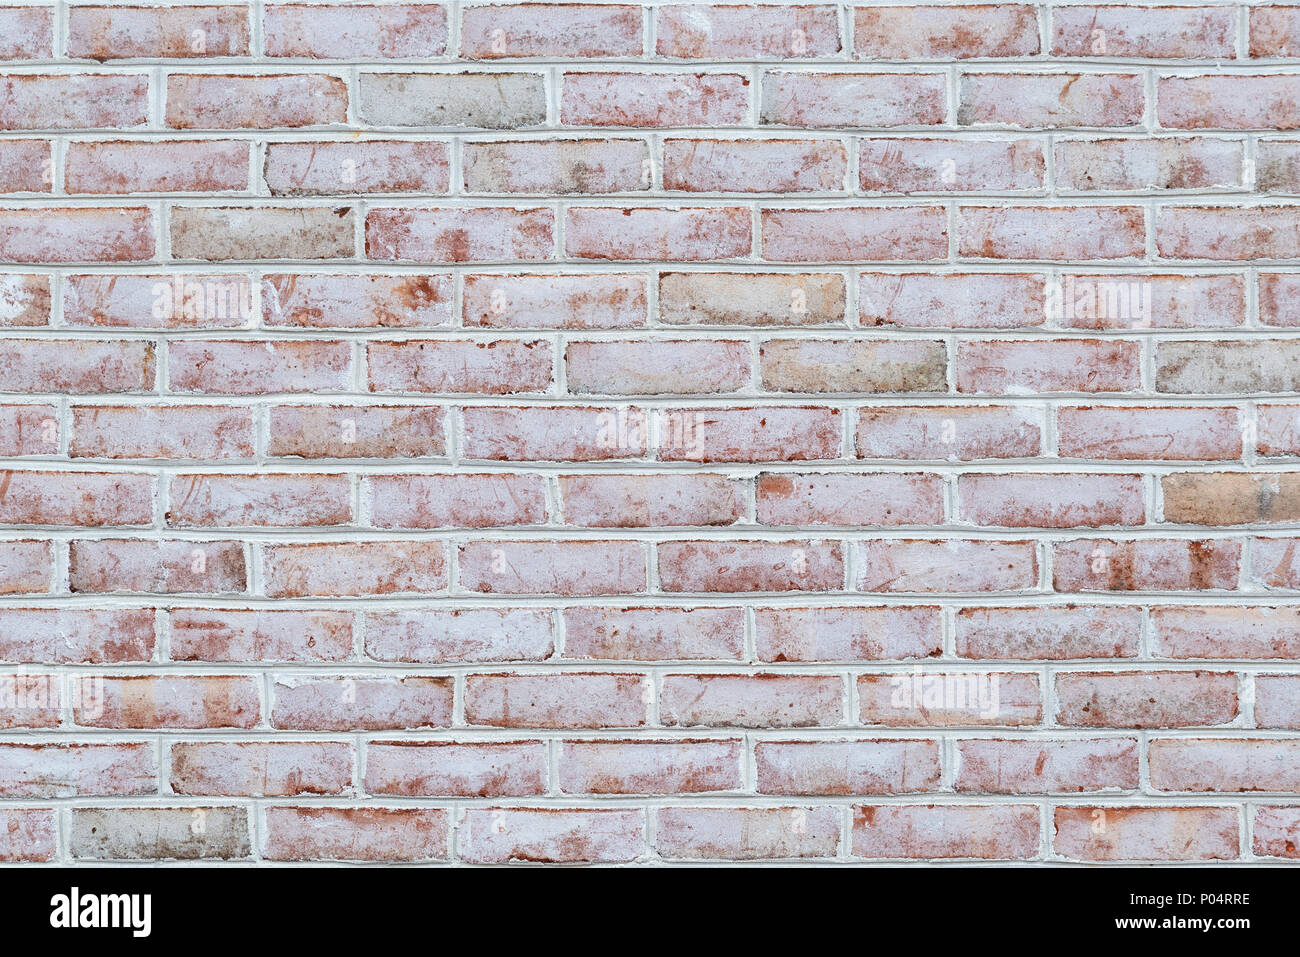 Whitewashed brick wall texture or background - Stock Image